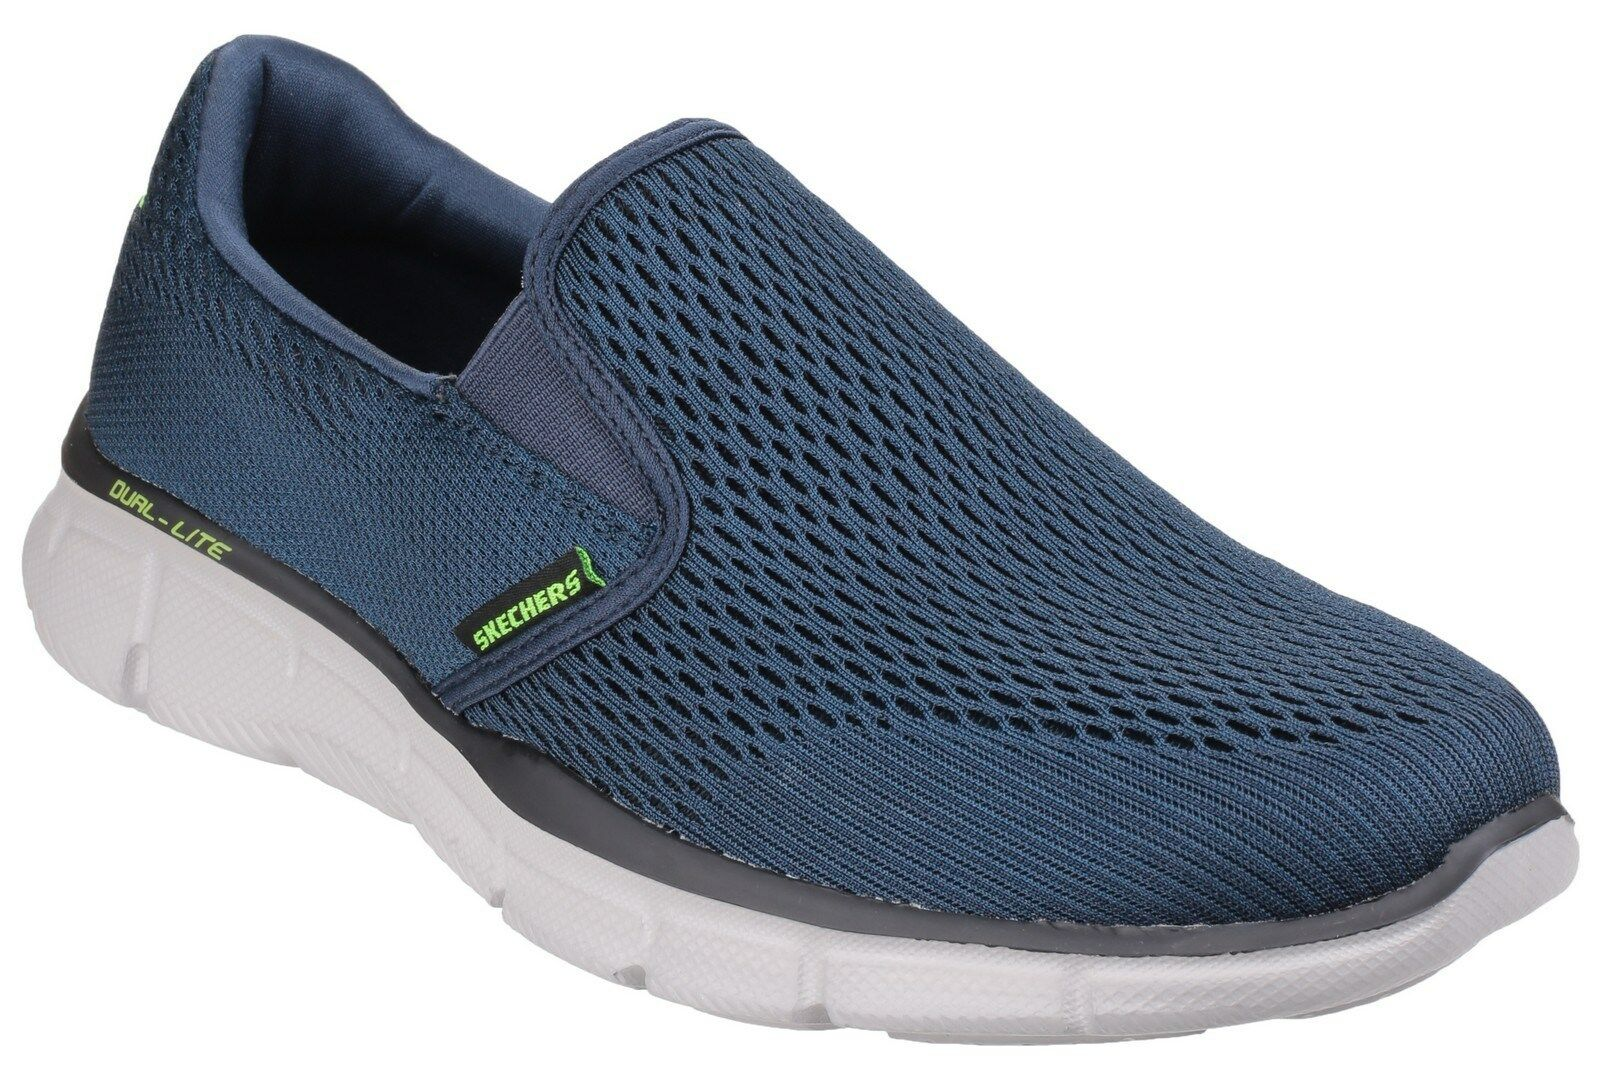 198ce5e56051 Mens Skechers Equalizer Double Play Slip on Comfortable Trainers ...